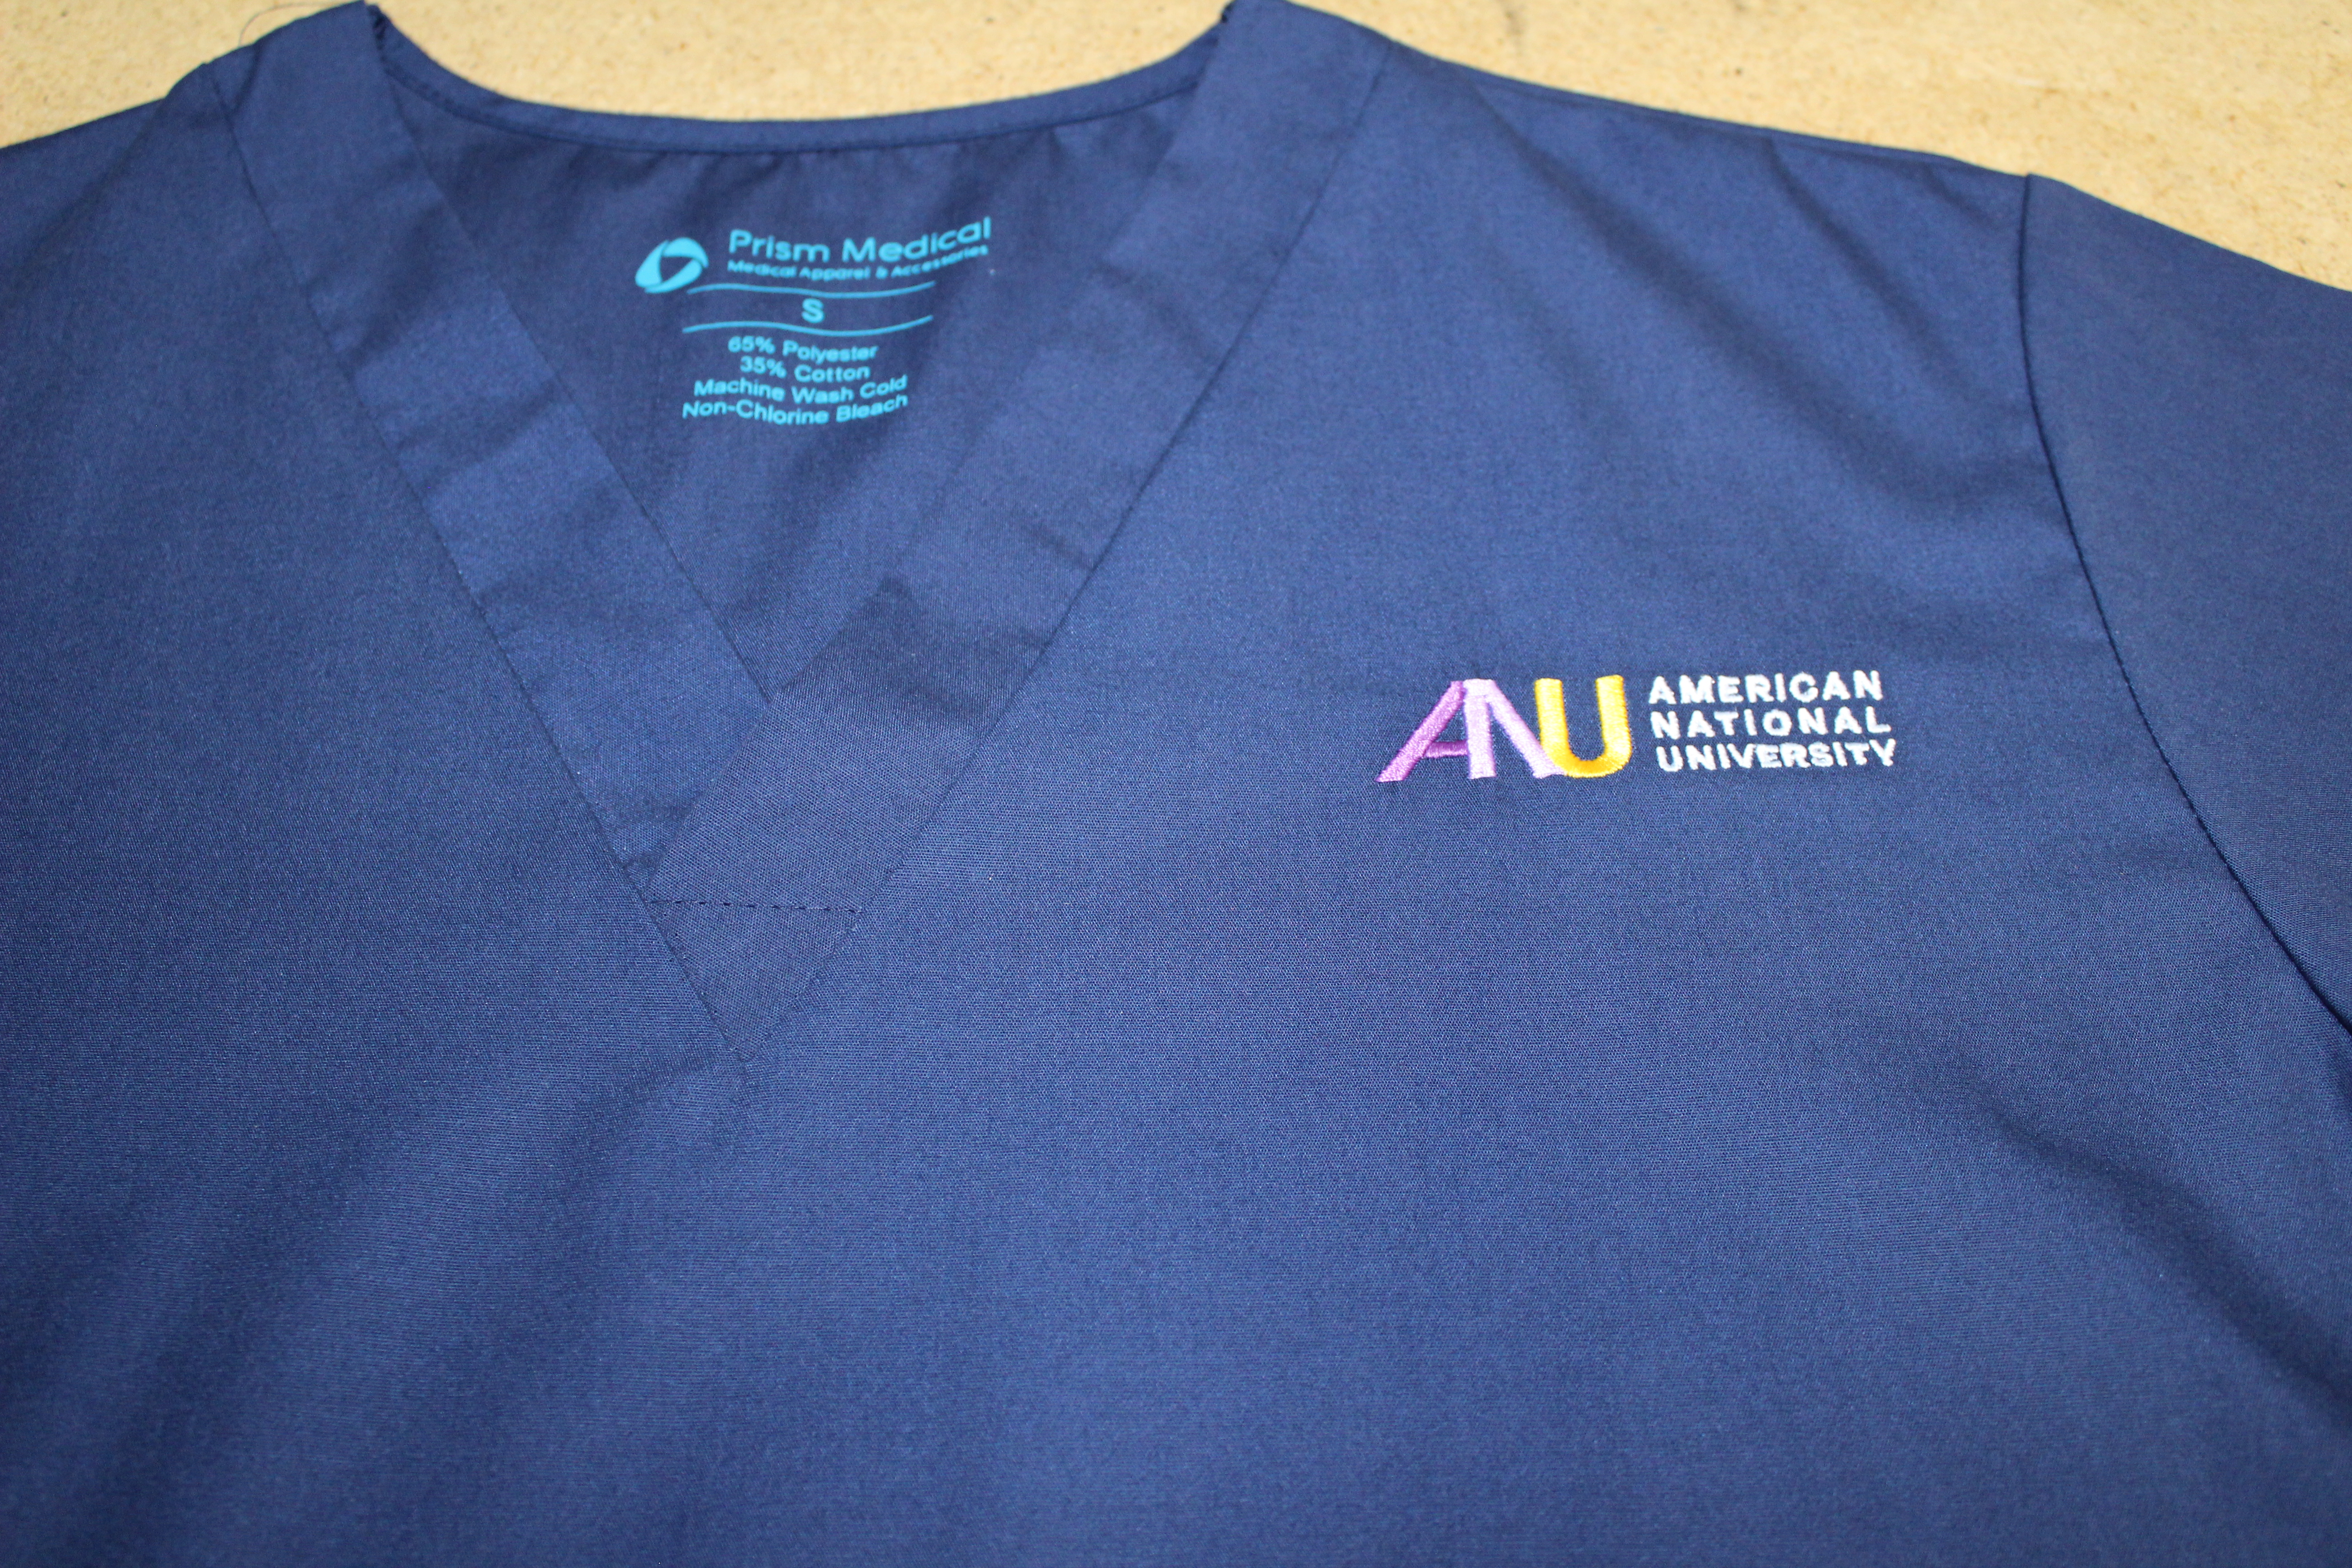 Embroidery-Prism Medical Apparel